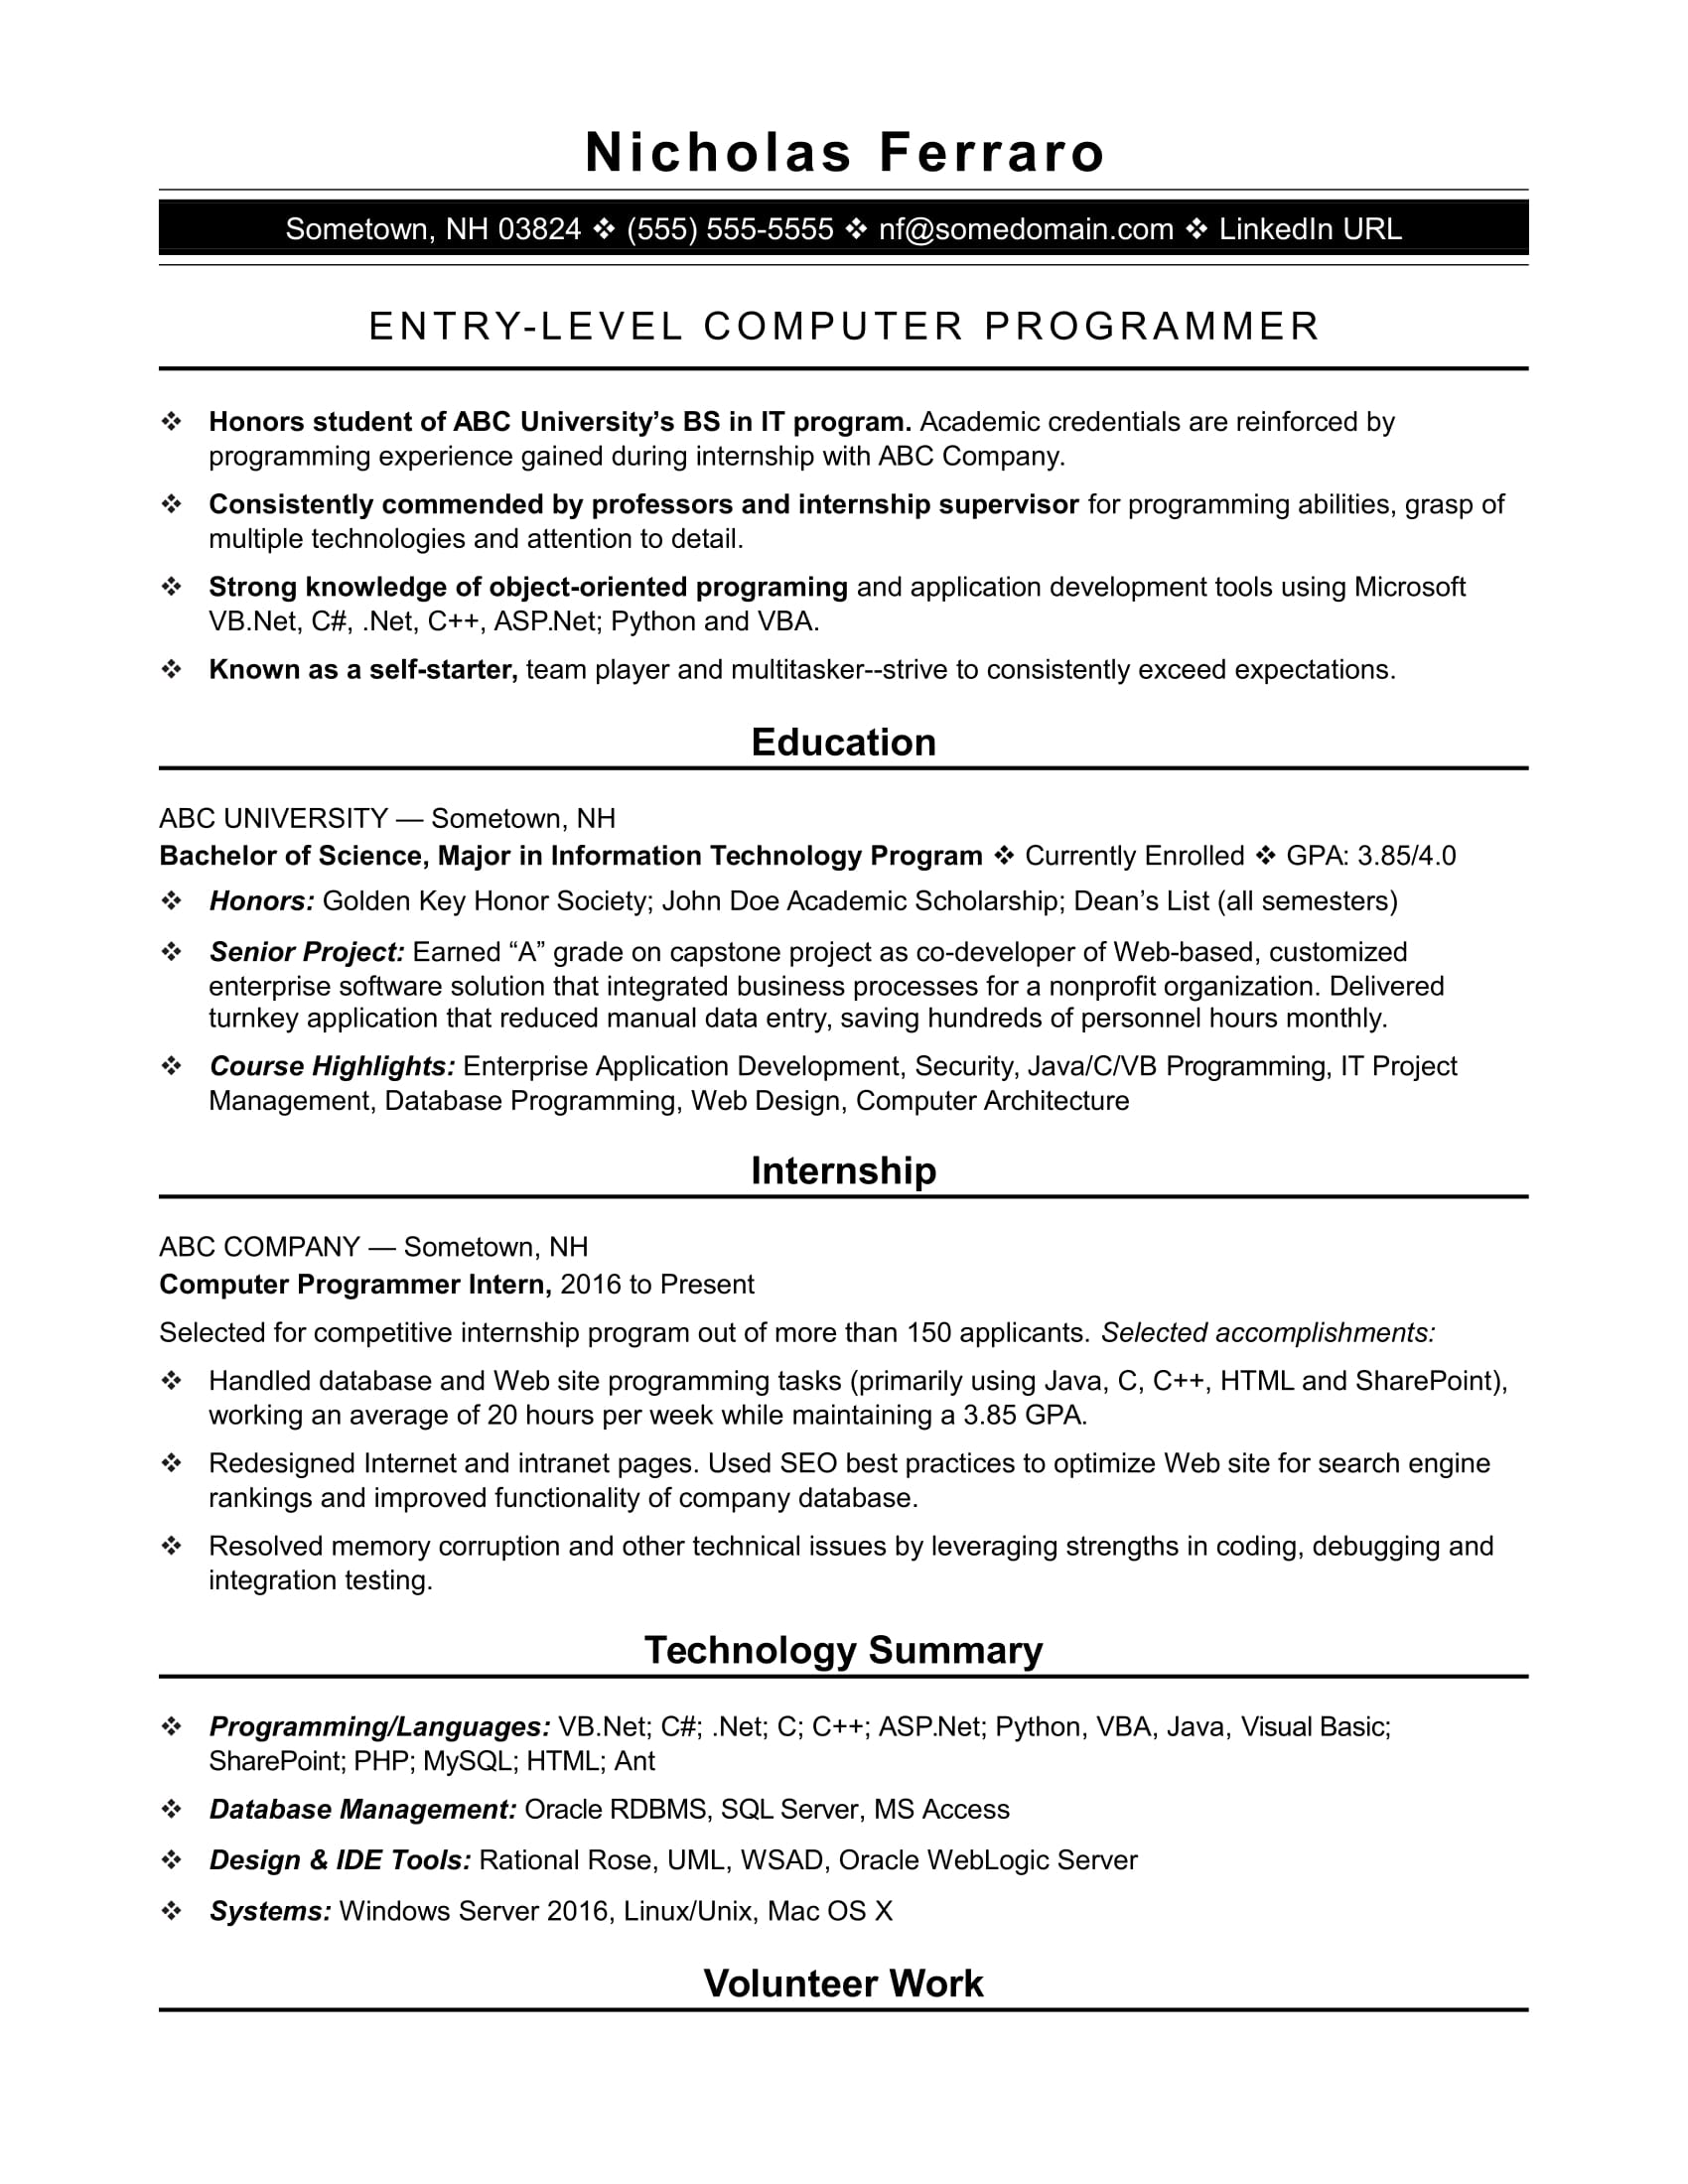 Sample Resume For An Entry Level Computer Programmer | Monster.com